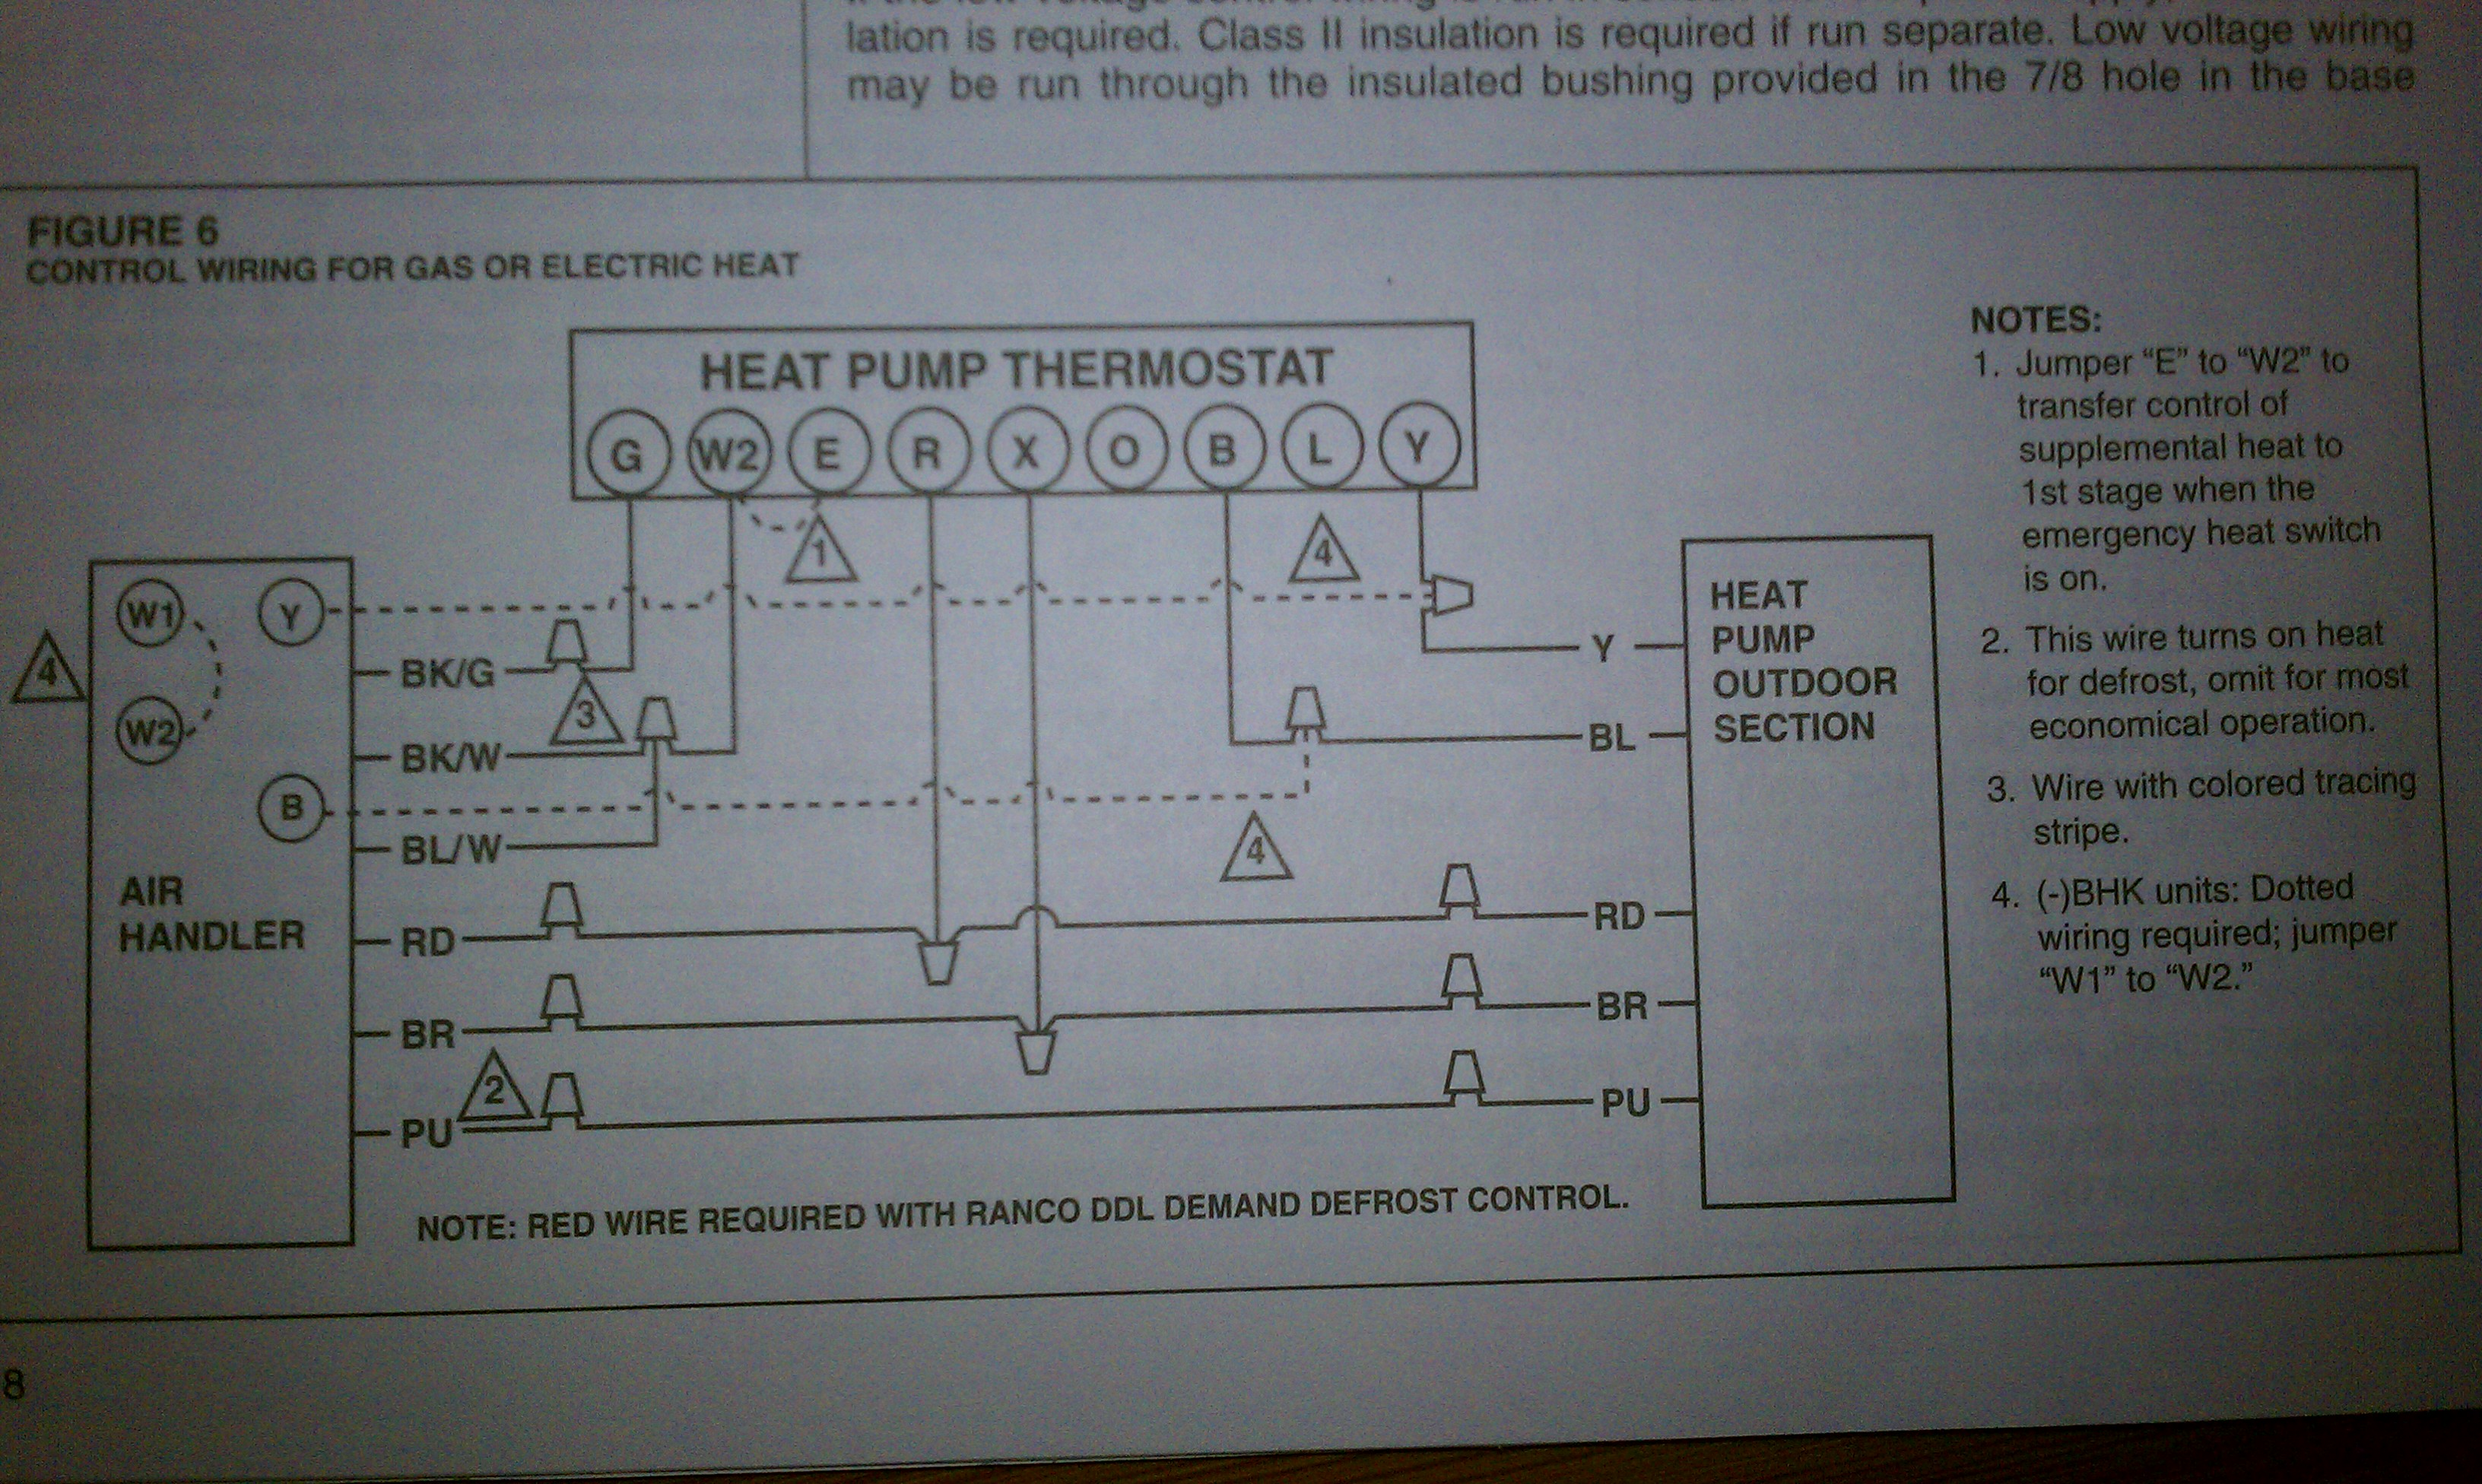 2011 11 07_140522_imag0147 goodman air handler wiring diagram the wiring diagram low voltage wiring diagram for heat pump at suagrazia.org